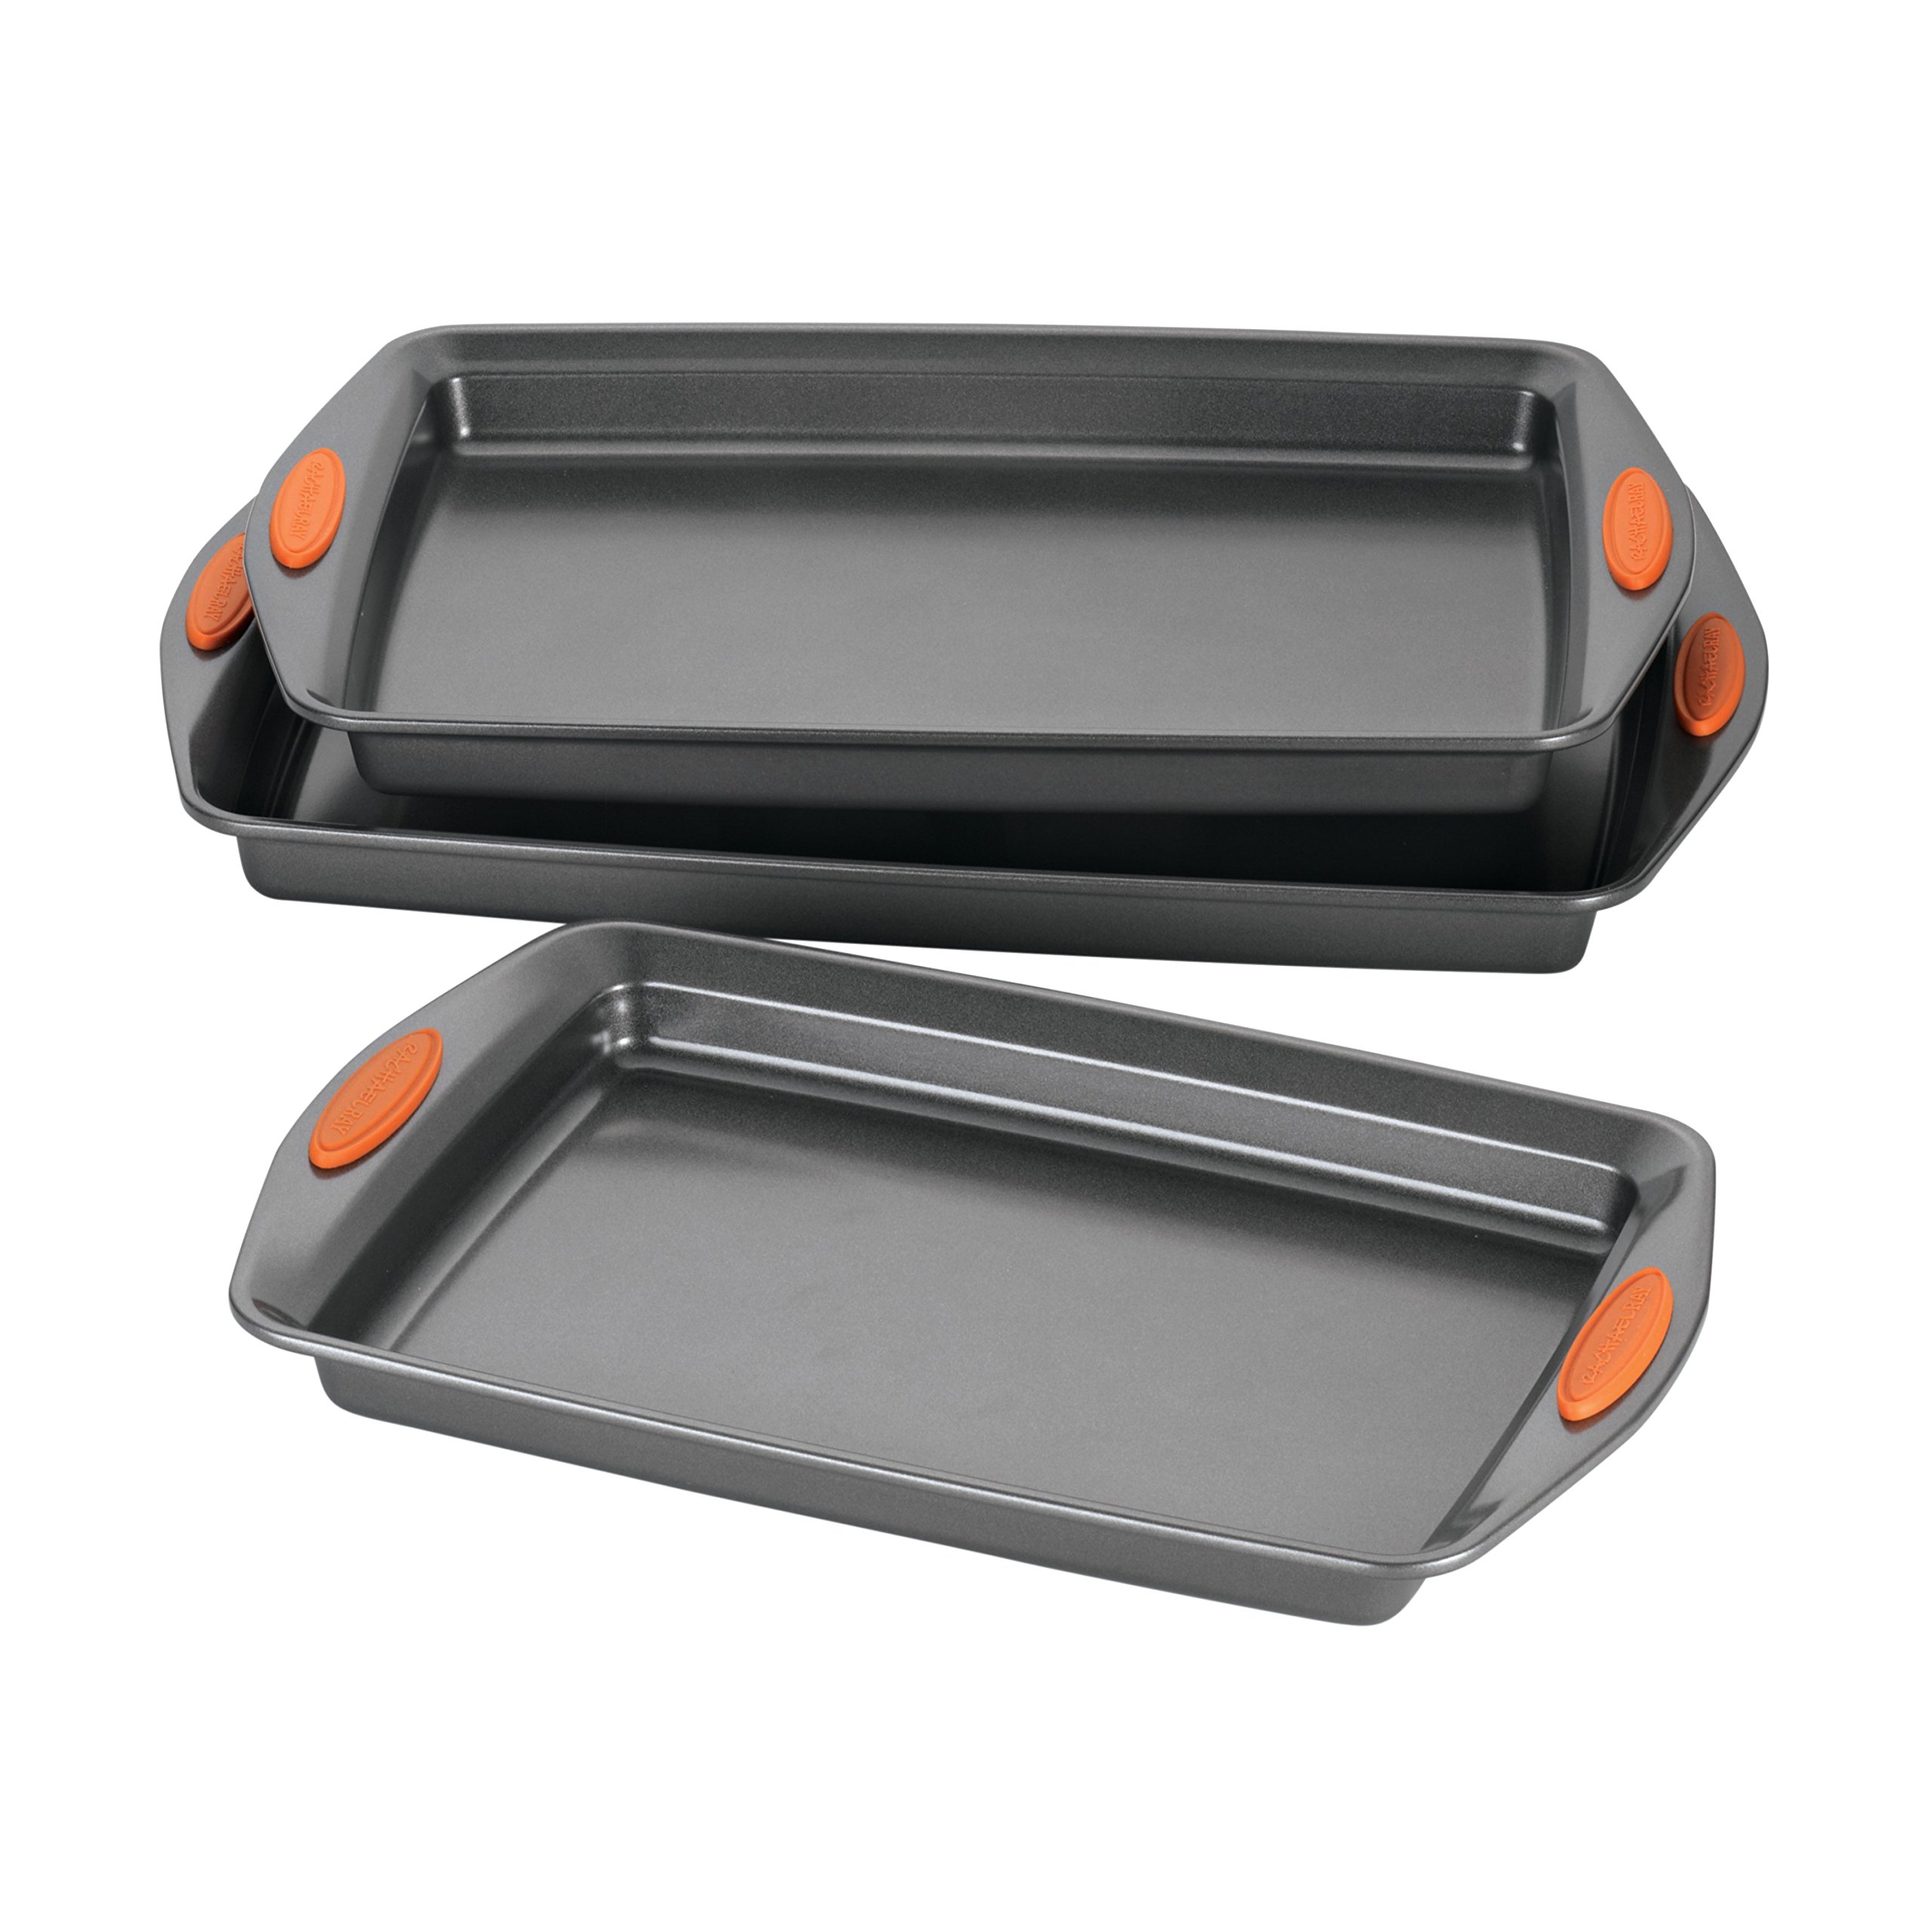 Rachael Ray Yum-o! Nonstick Bakeware 3-Piece Oven Lovin' Cookie Pan Set, Gray with Orange Silicone Grips by Rachael Ray (Image #2)